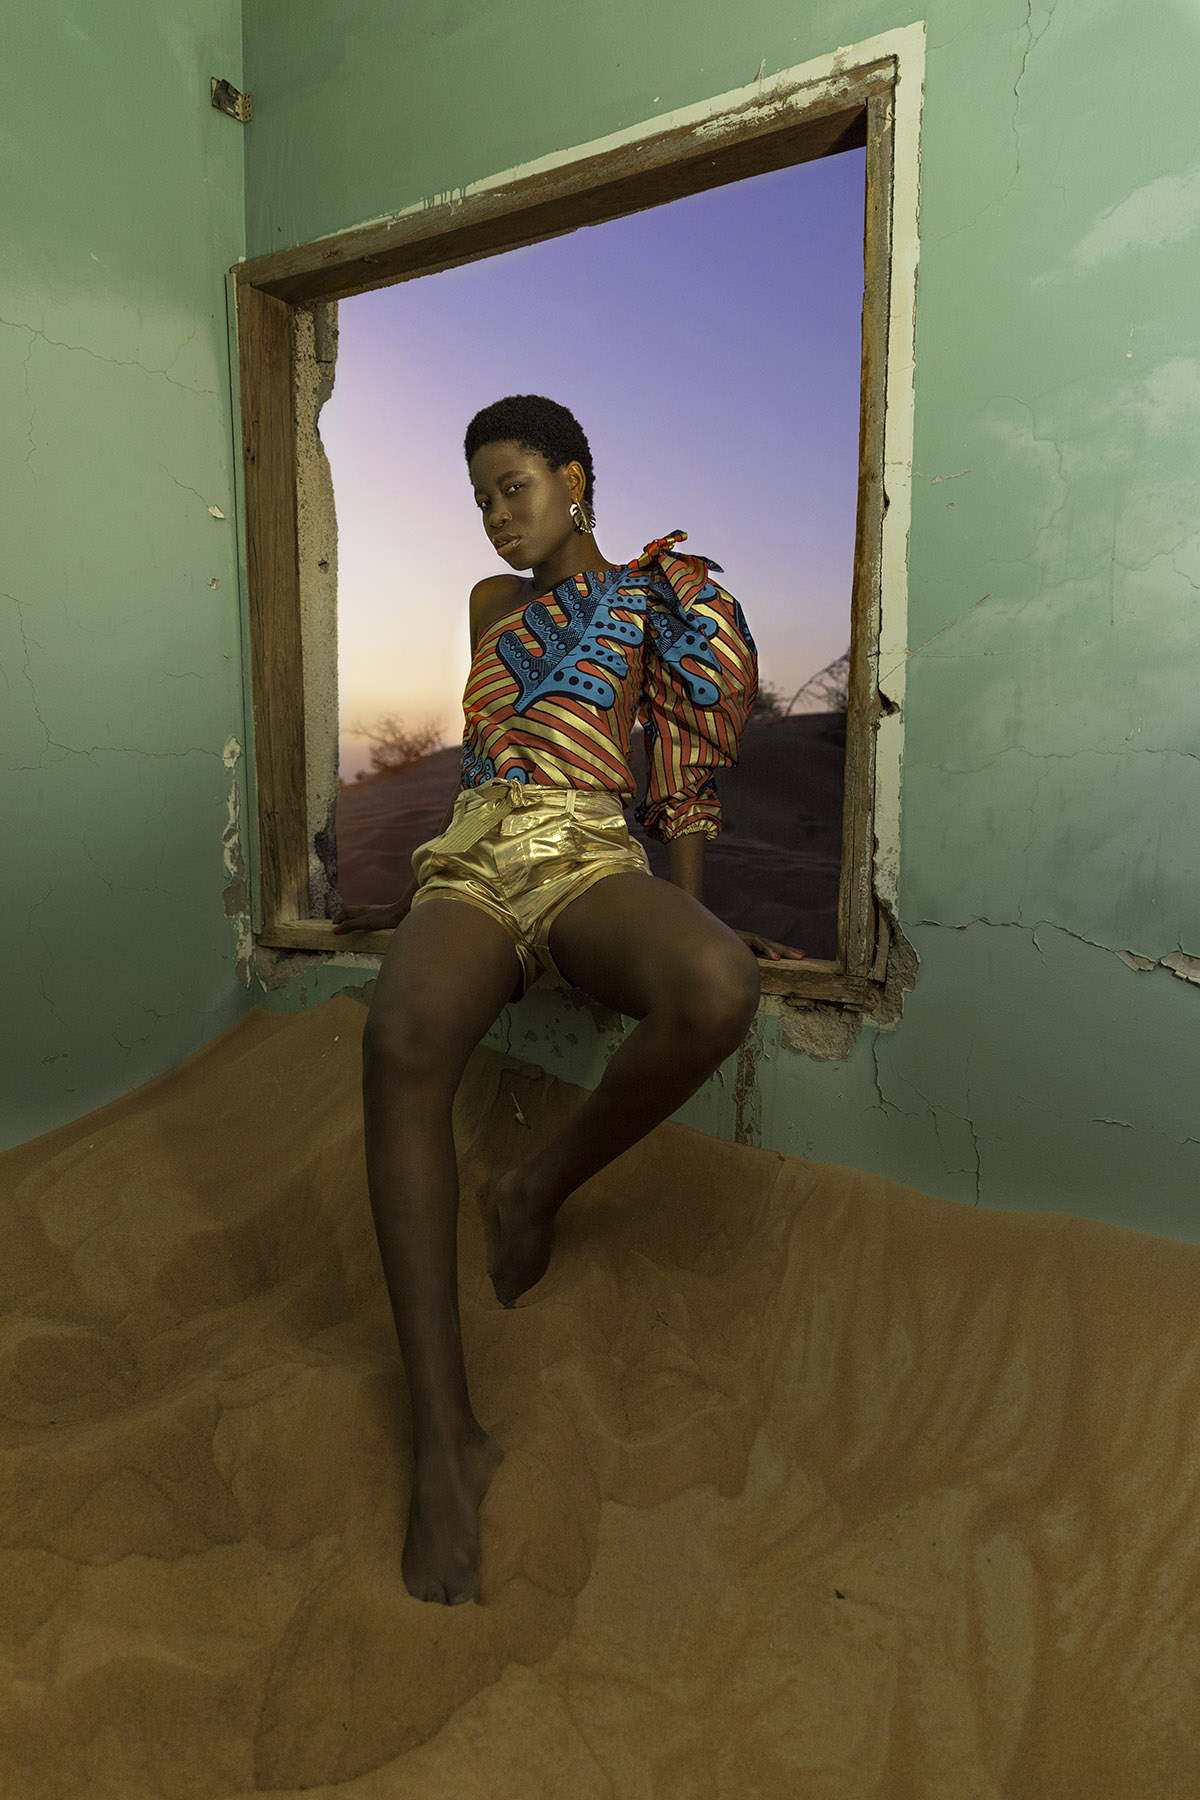 Blessing Williams in desert photoshoot by Loesje Kessels Fashion Photographer Dubai